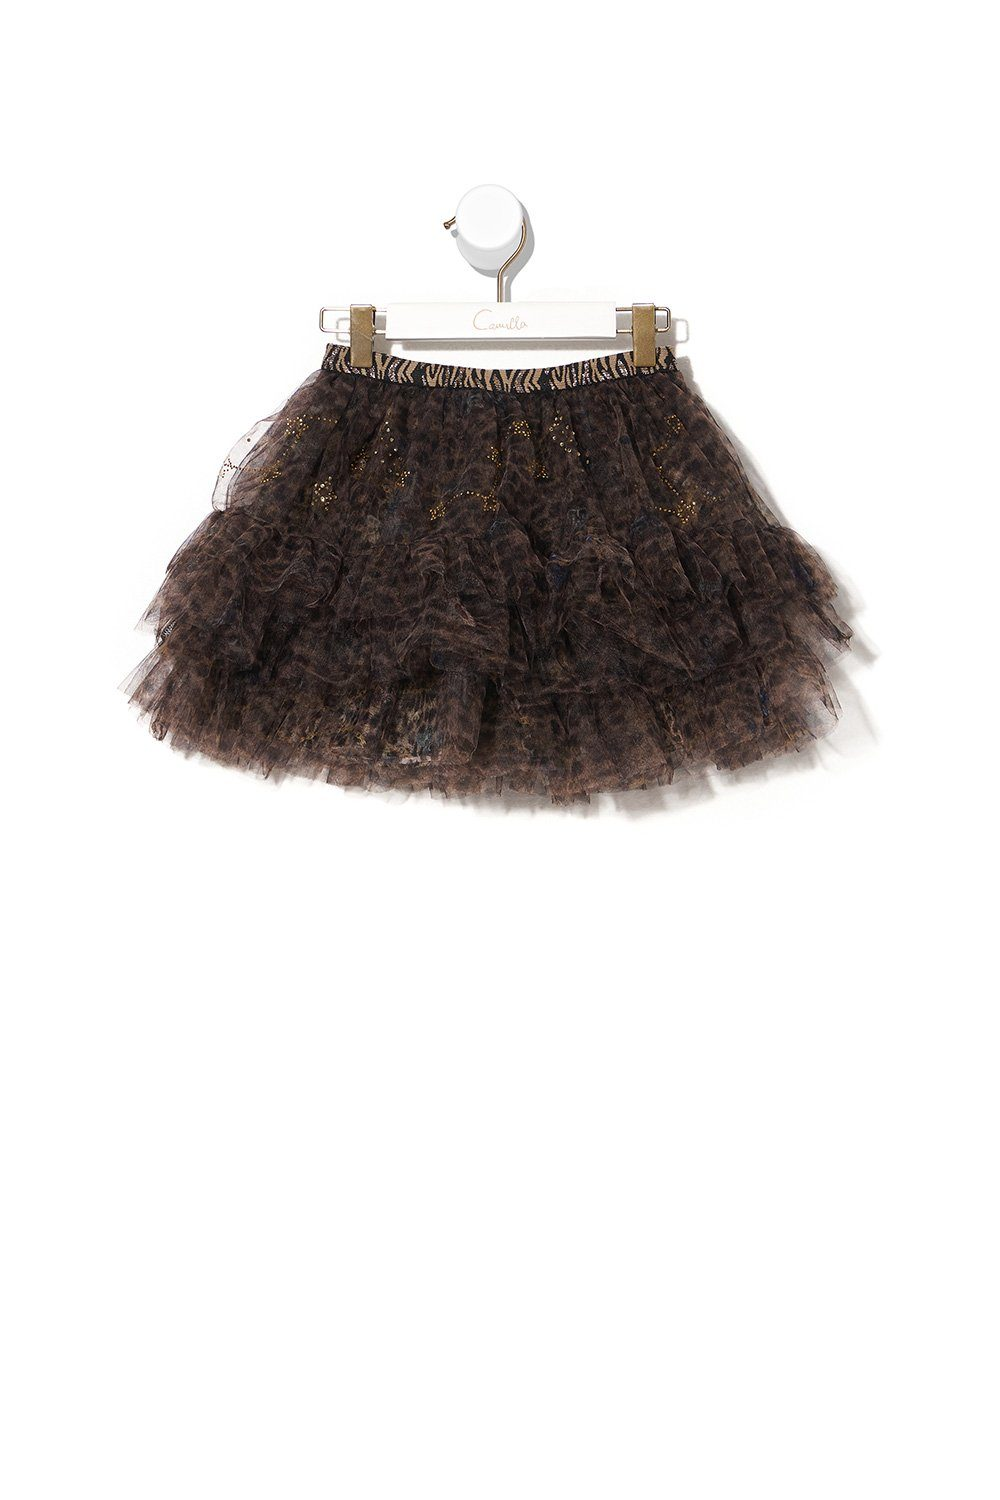 London Calling Kids Tutu Frill Skirt 4-10 GIRLS CLOTHING CAMILLA